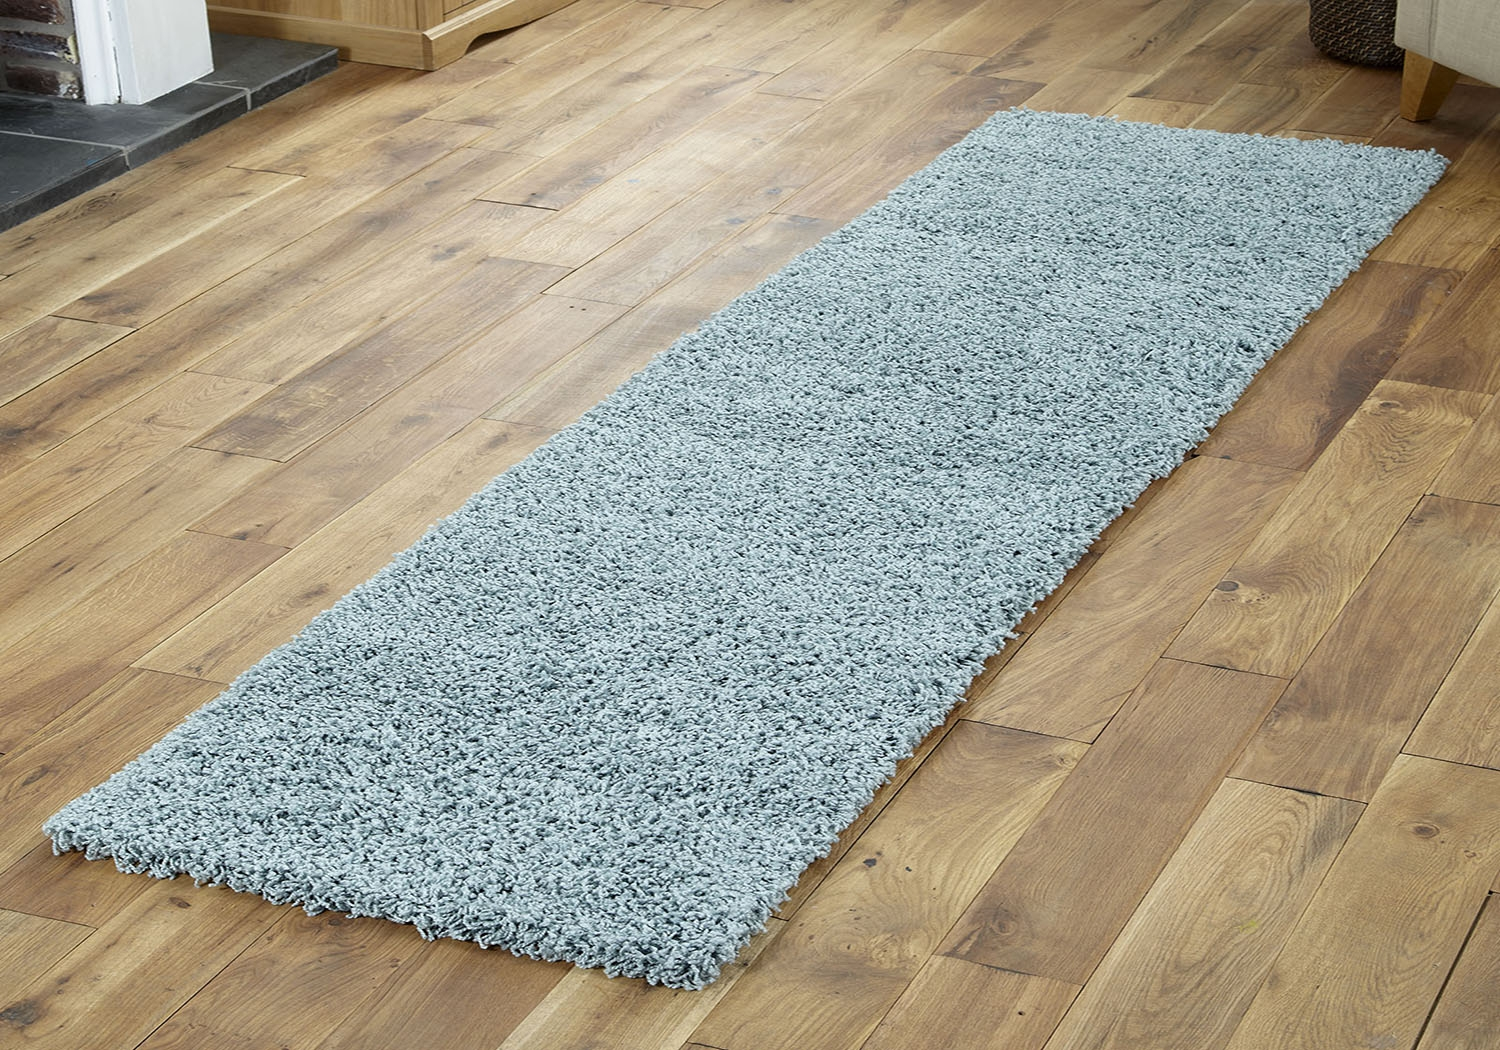 Modern Small Extra X Large Rug Thick 5cm Pile Duck Egg Blue Intended For Duck Egg Rugs (Image 9 of 15)